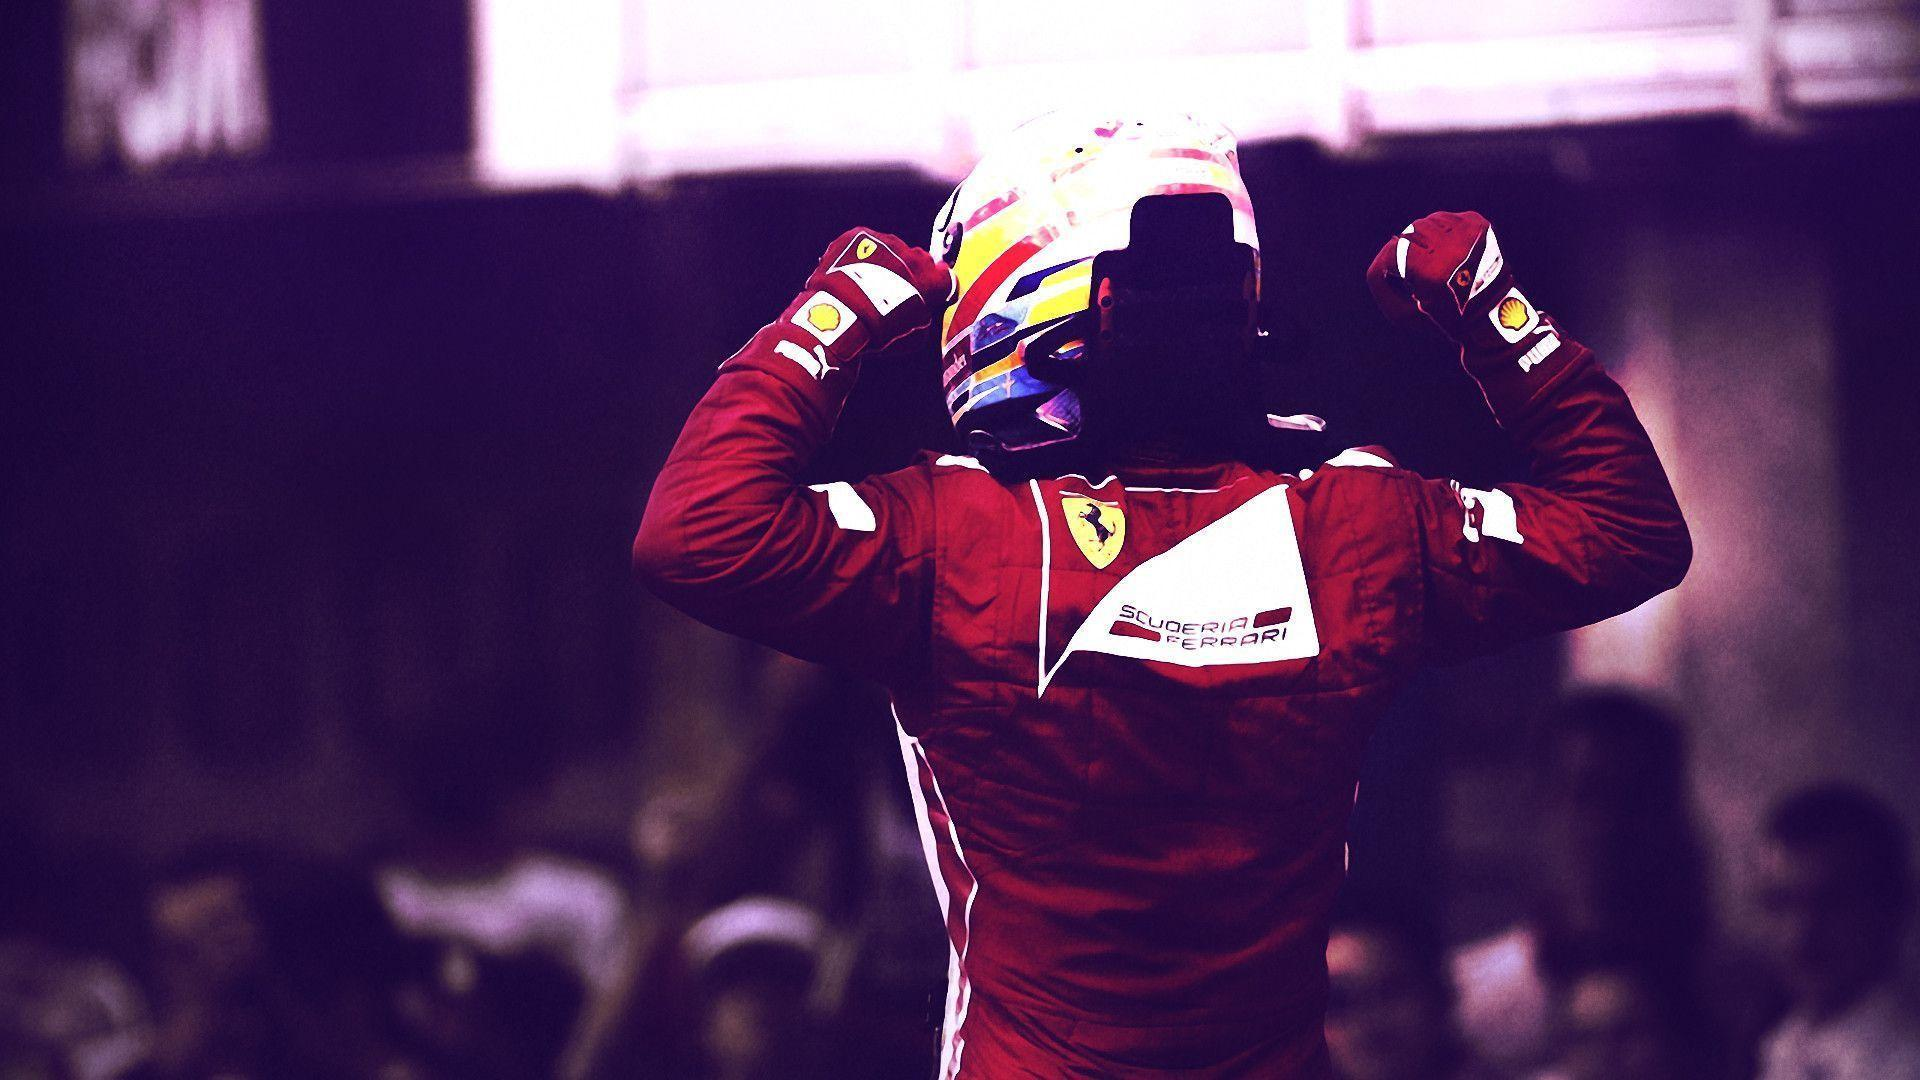 fernando alonso wallpapers and - photo #1